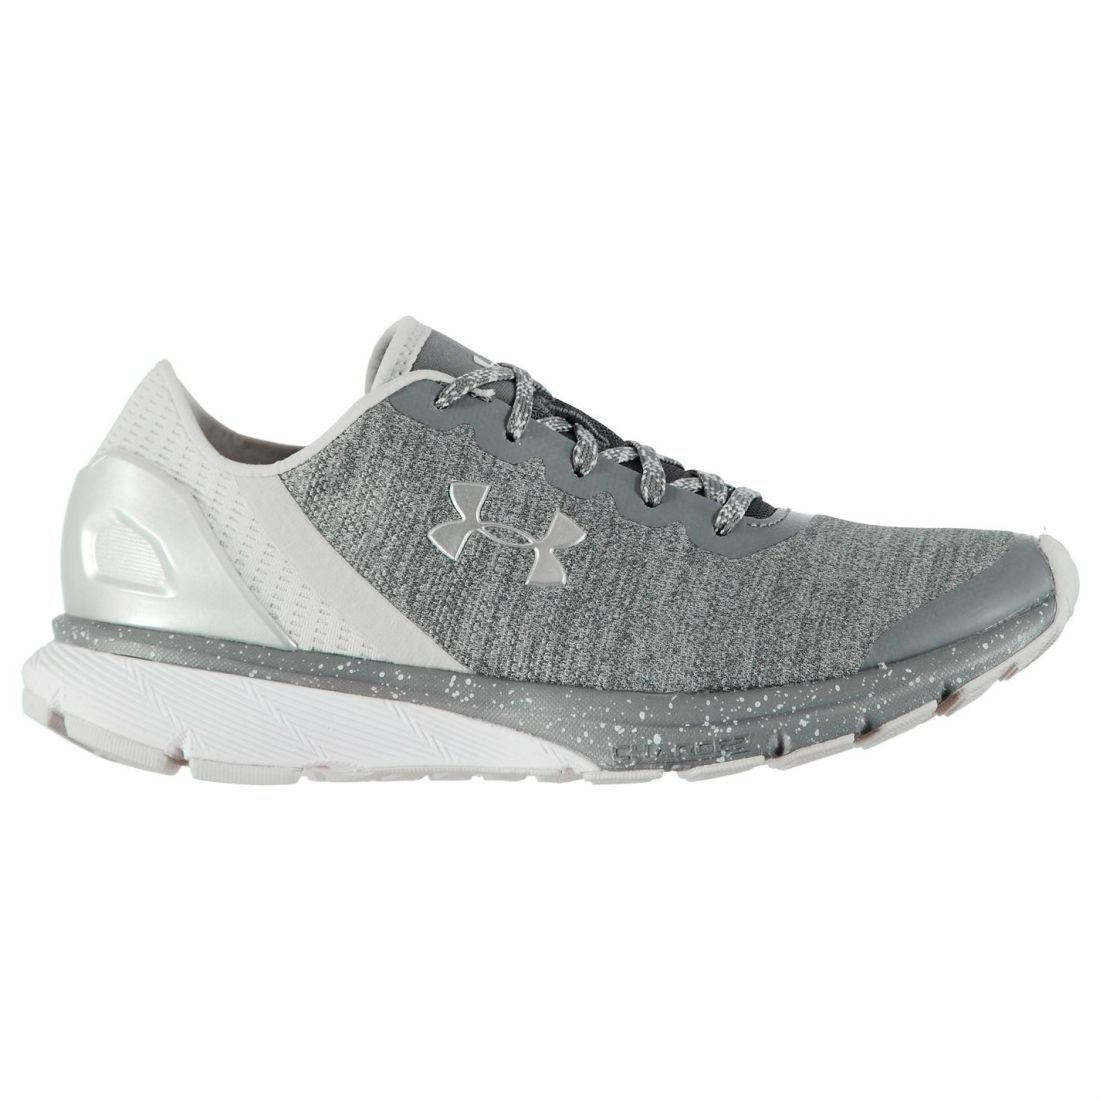 Under Armour Womens Charged Escape Running Shoes Runners Lace Up ... 60881cbd1f